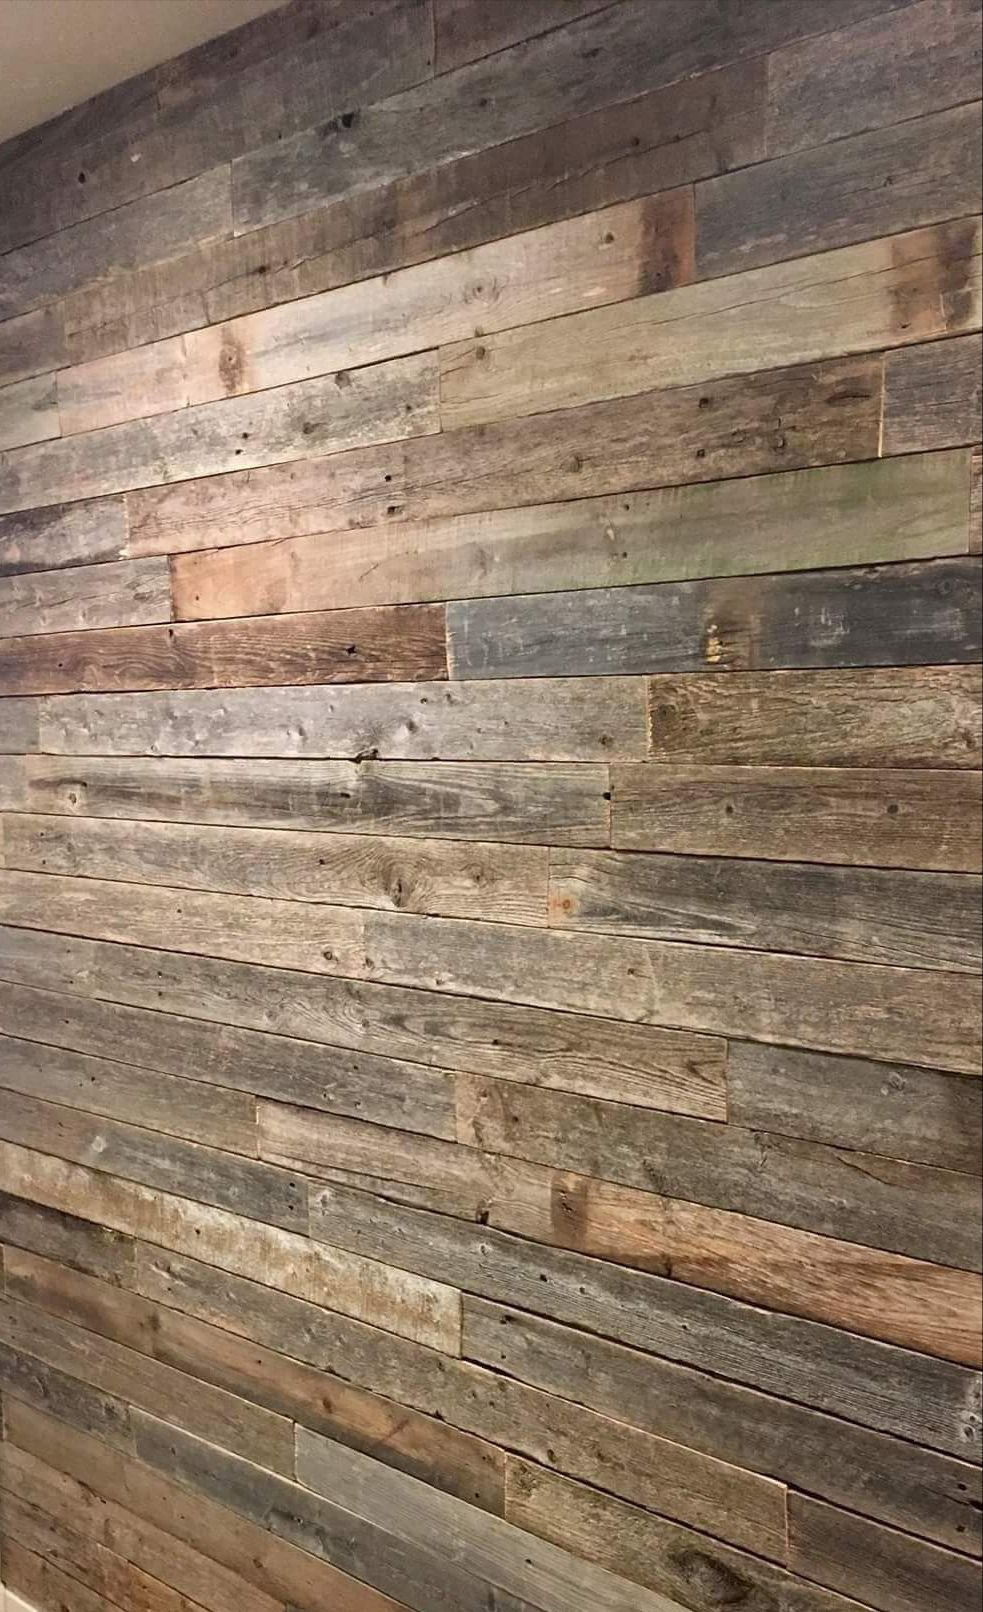 Rustic Weathered Reclaimed Wood Planks for DIY Crafts, Projects and Decor (20 Planks - 48'' Long) by Rockin' Wood (Image #1)